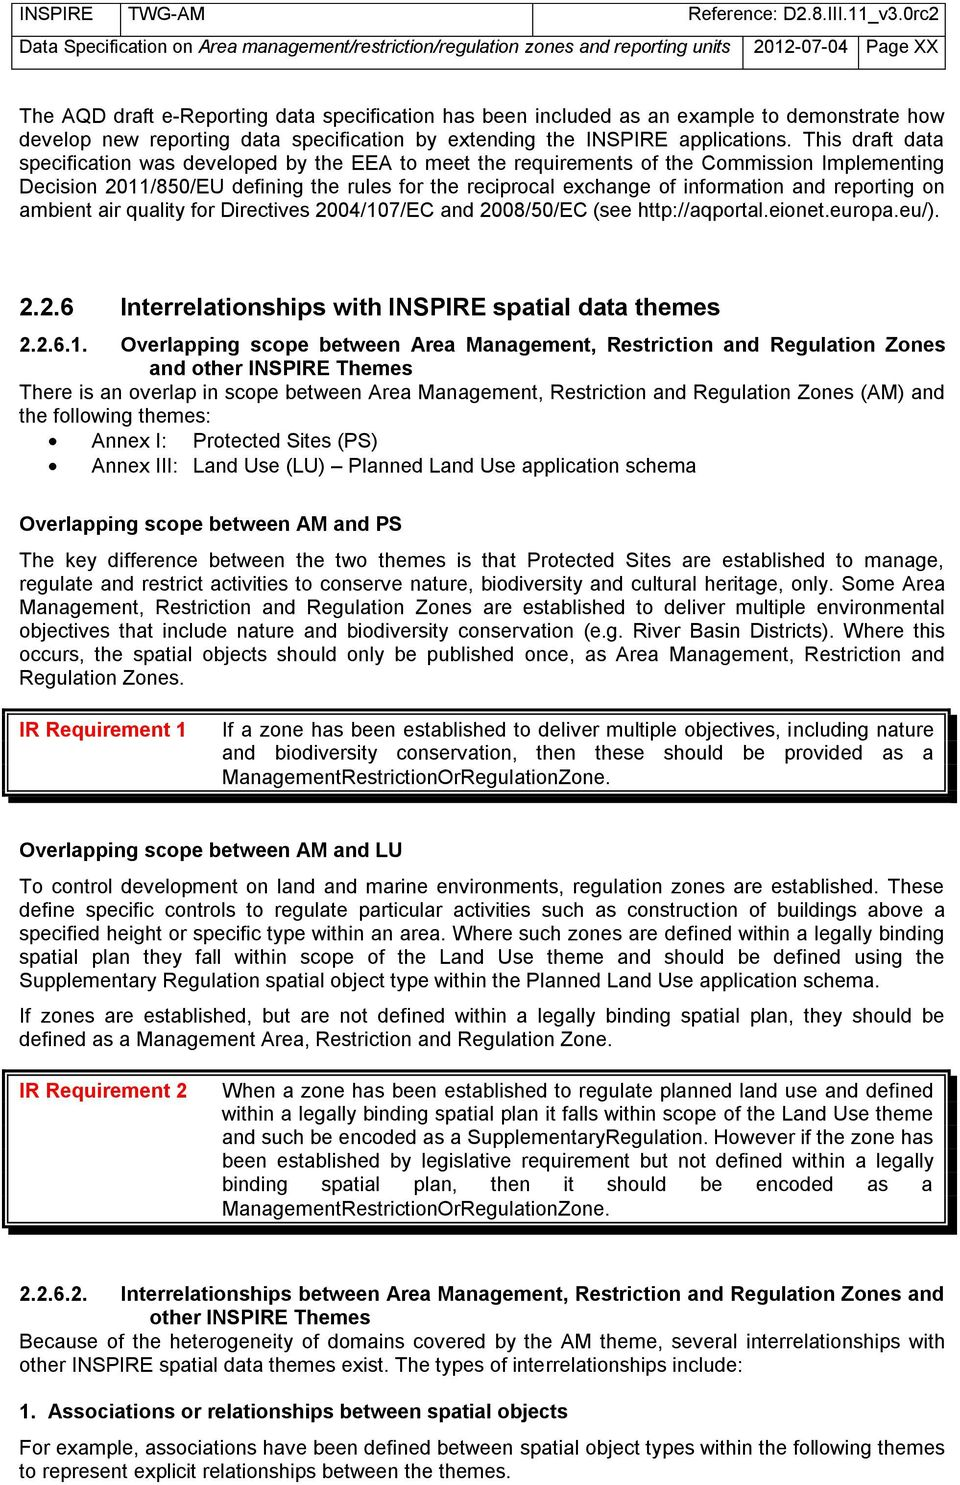 This draft data specification was developed by the EEA to meet the requirements of the Commission Implementing Decision 2011/850/EU defining the rules for the reciprocal exchange of information and